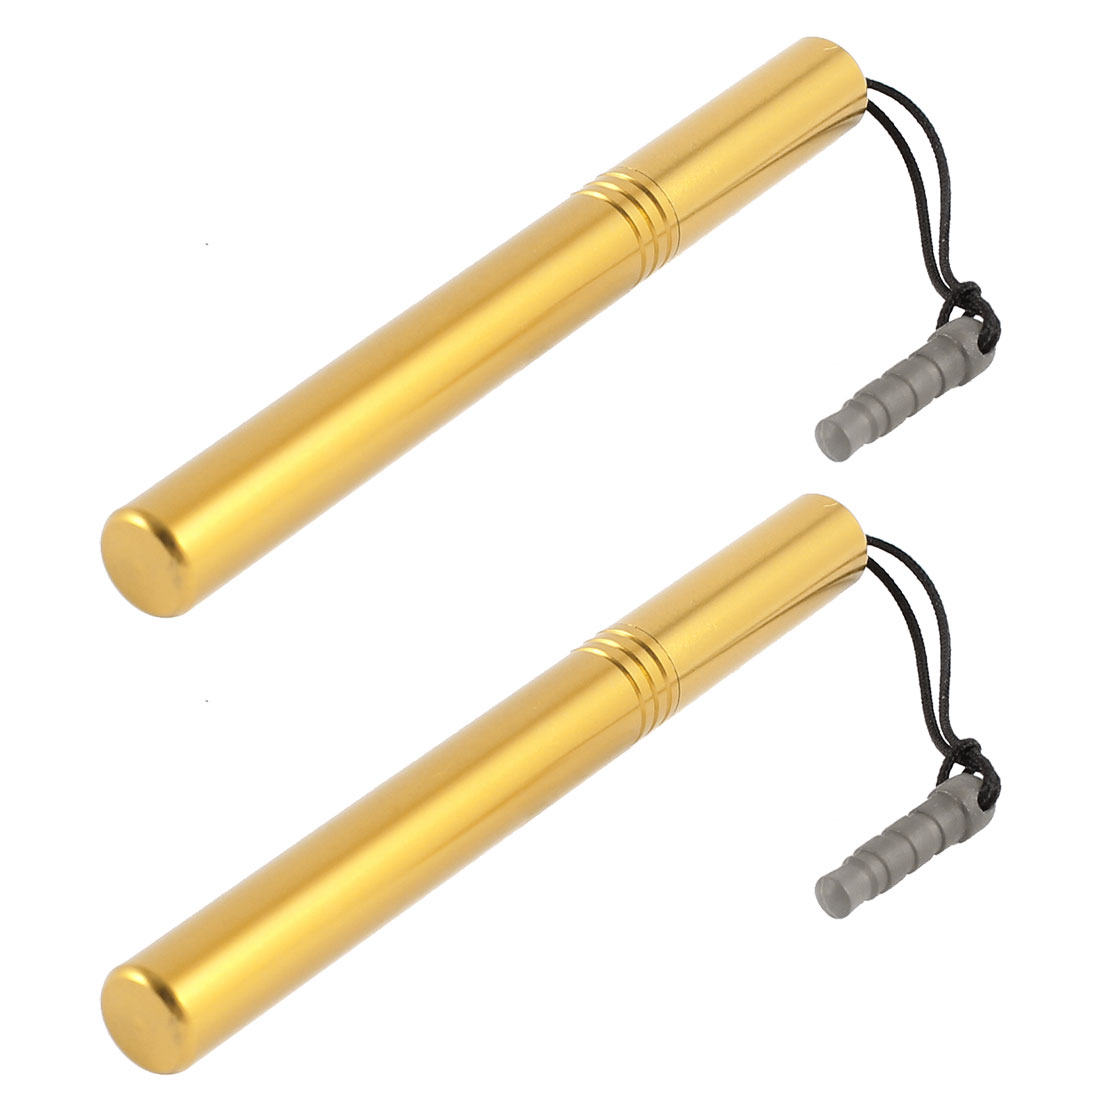 2 x Gold Tone 3.5mm Dust Stopper Touch Screen Ballpoint Pen Stylus for Phone